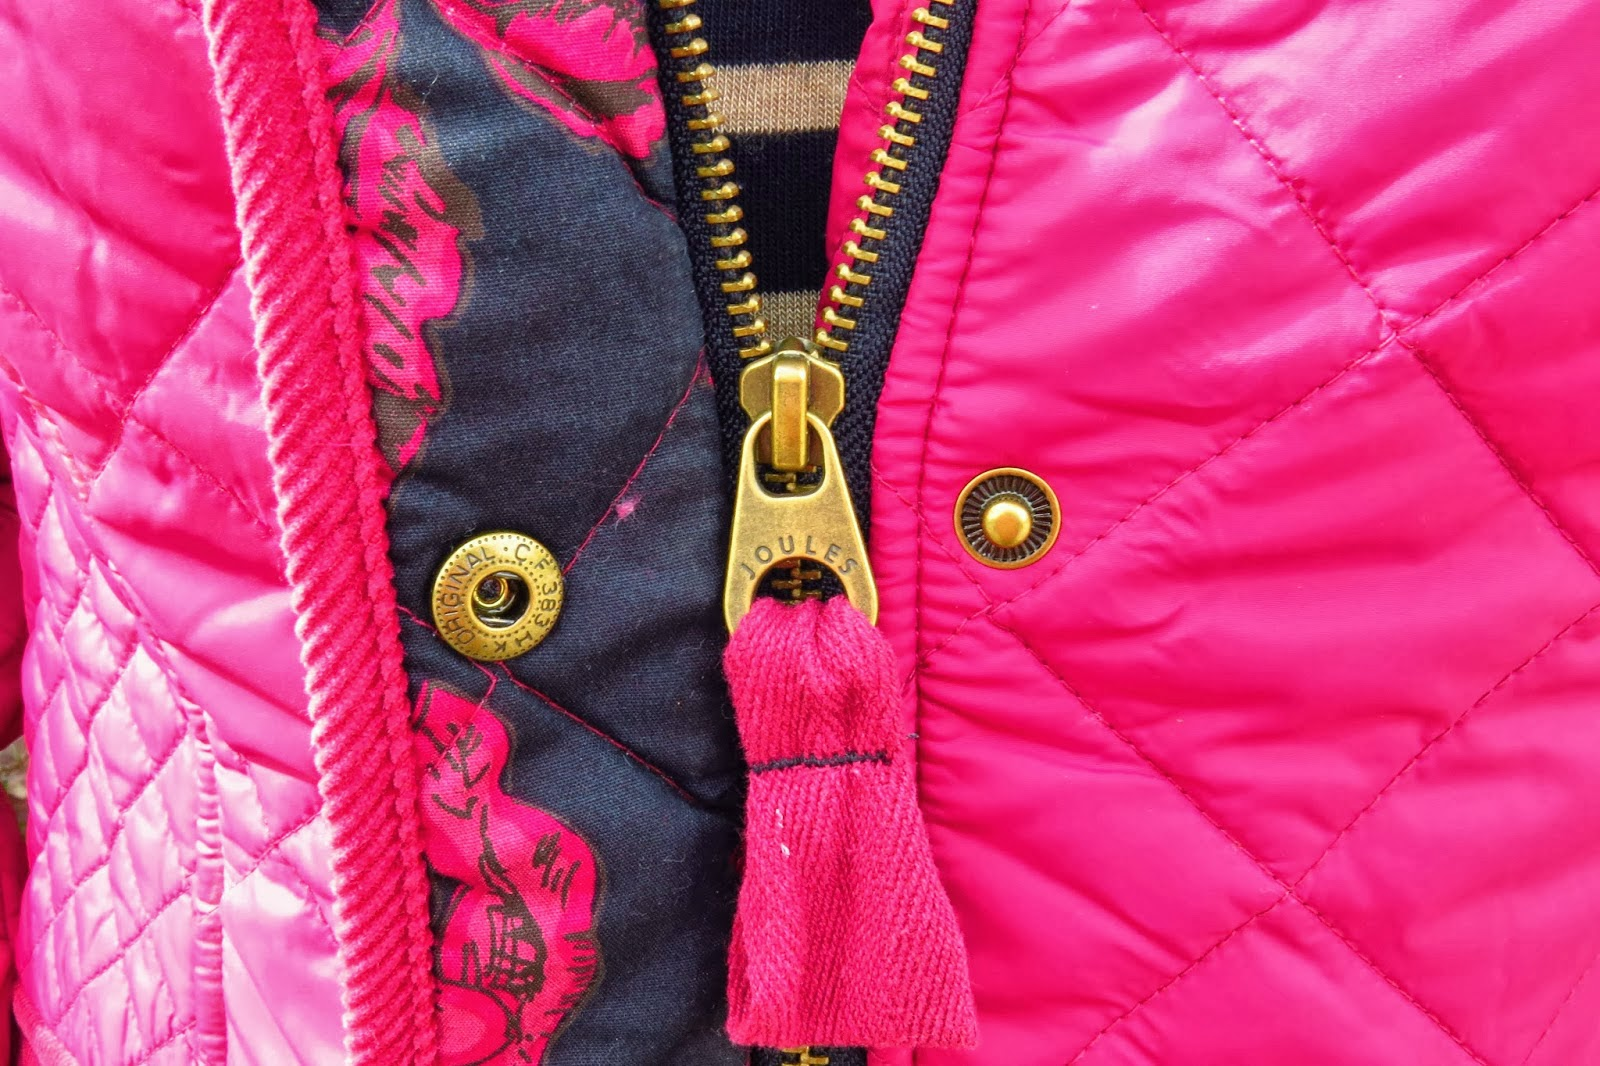 Aunie Sauce The Quilted Jacket